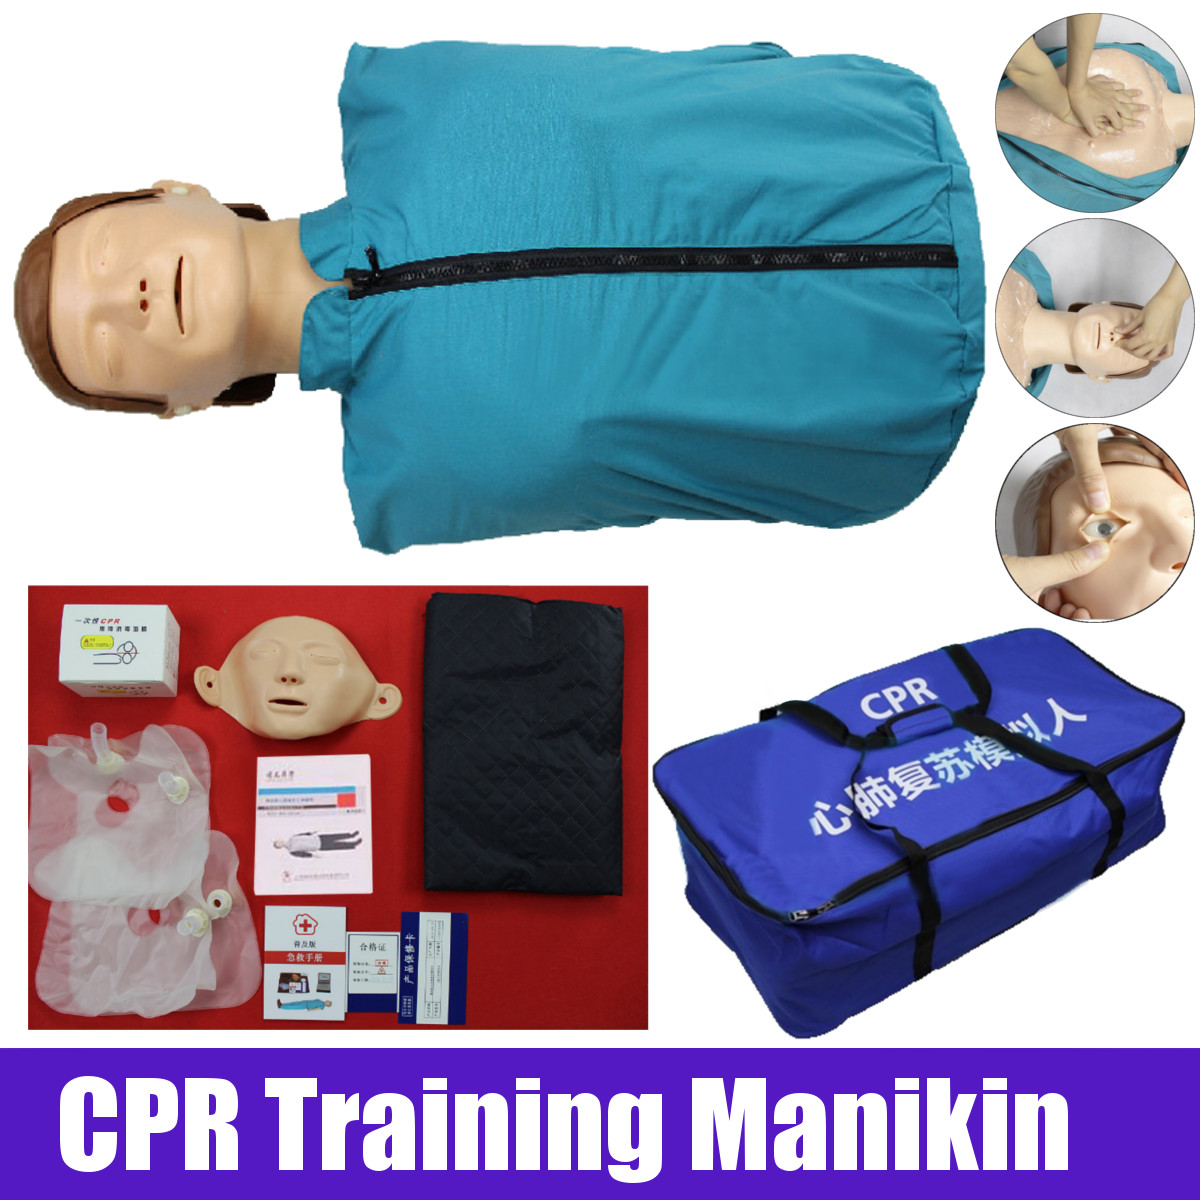 74x36x26 Bust CPR Training Manikin Professional Nursing Training Mannequin Medical Model Human First Aid Training Model New